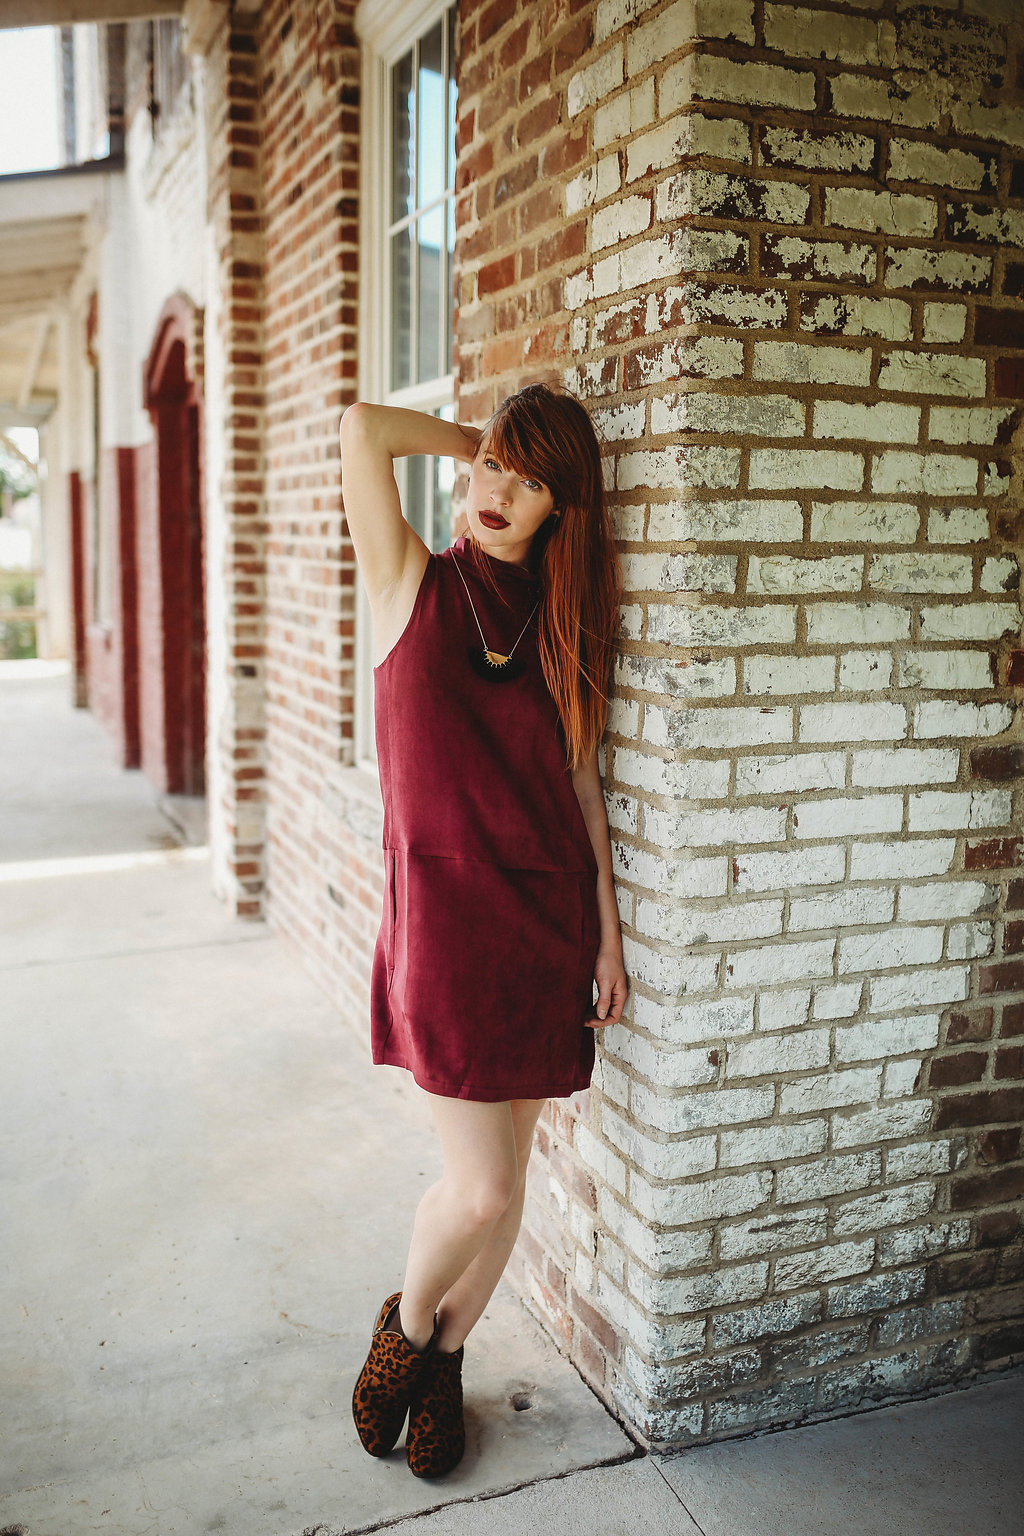 Baughman's Mill  is a beautiful building downtown.  A local family has taken the time to begin restoring the building, so it's an awesome spot to snap a cute photo.    Get the look at Morgan's on Main:  Wine Shift Dress with Mock Neck ($34.99) | Cheetah Booties ($36)  Morgan Ships! shop her  Facebook  and  IG